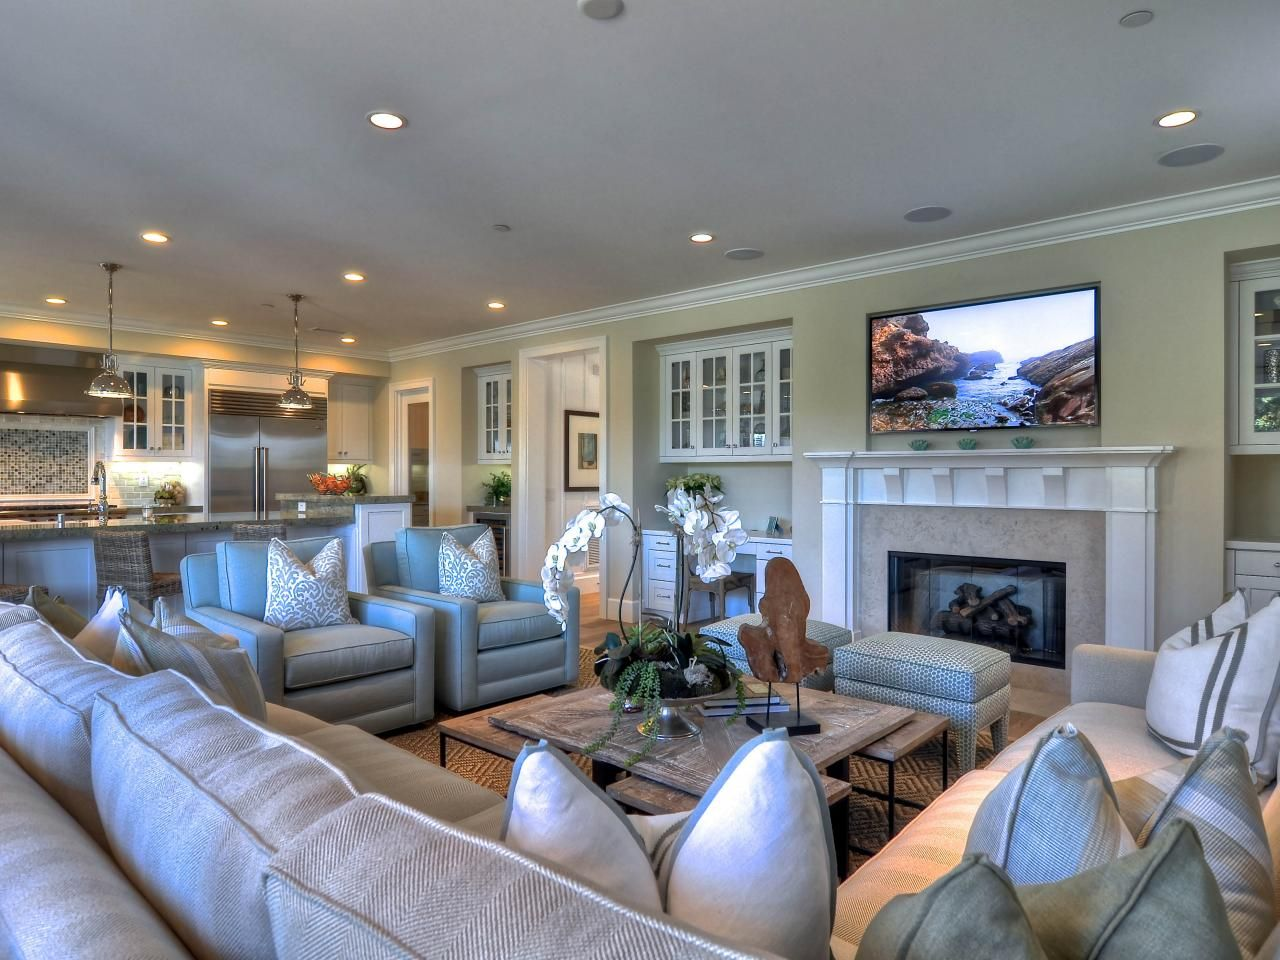 Coastal decor is found in the details in this spacious for Living room layout with sectional